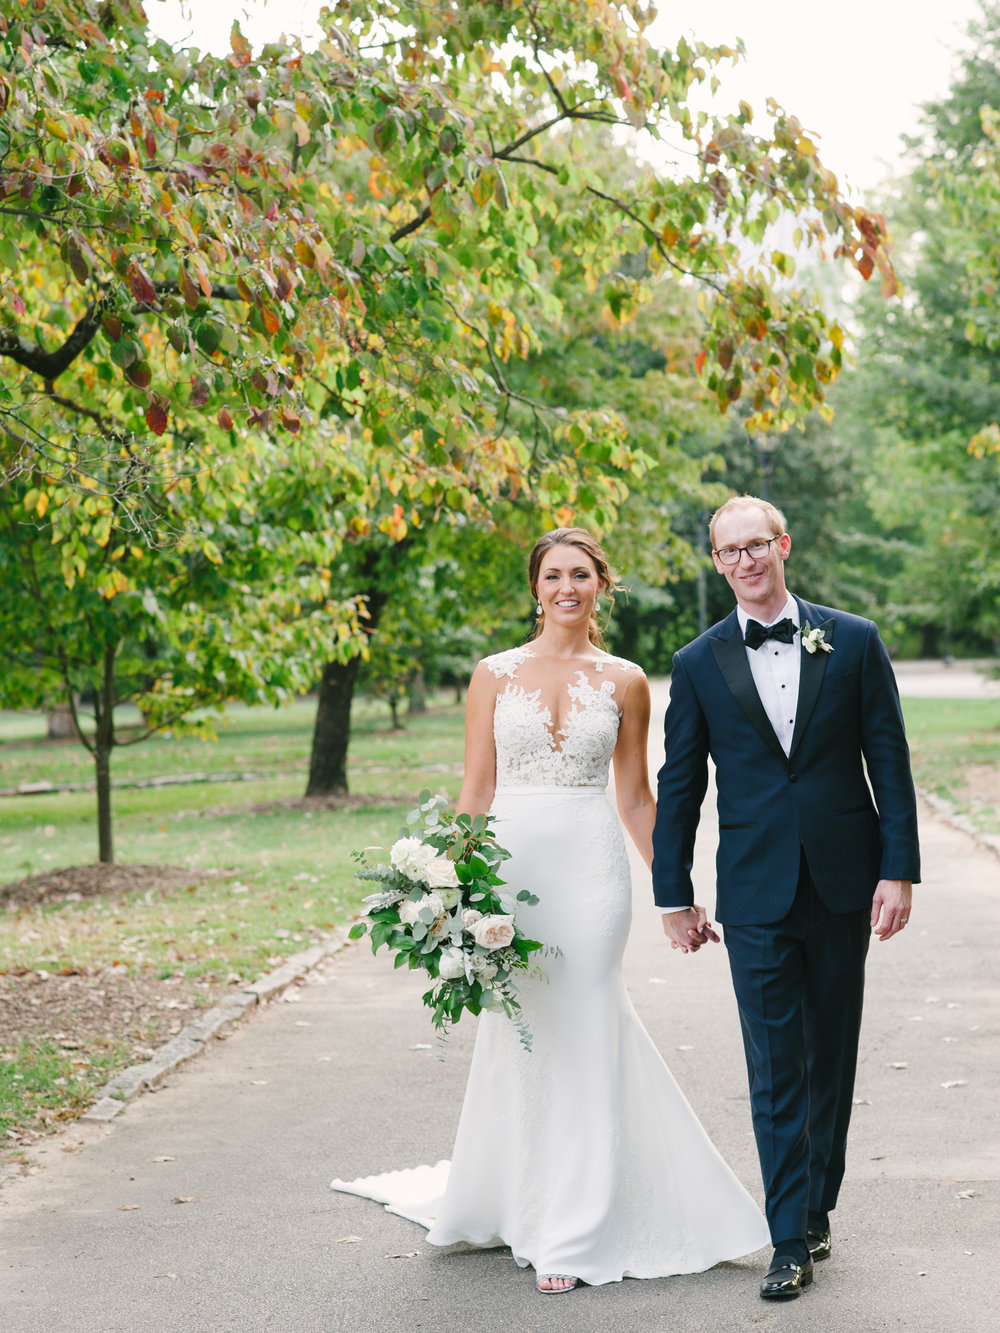 The Greystone at Piedmont Park Wedding - Carrie Joy Photography-1088.jpg